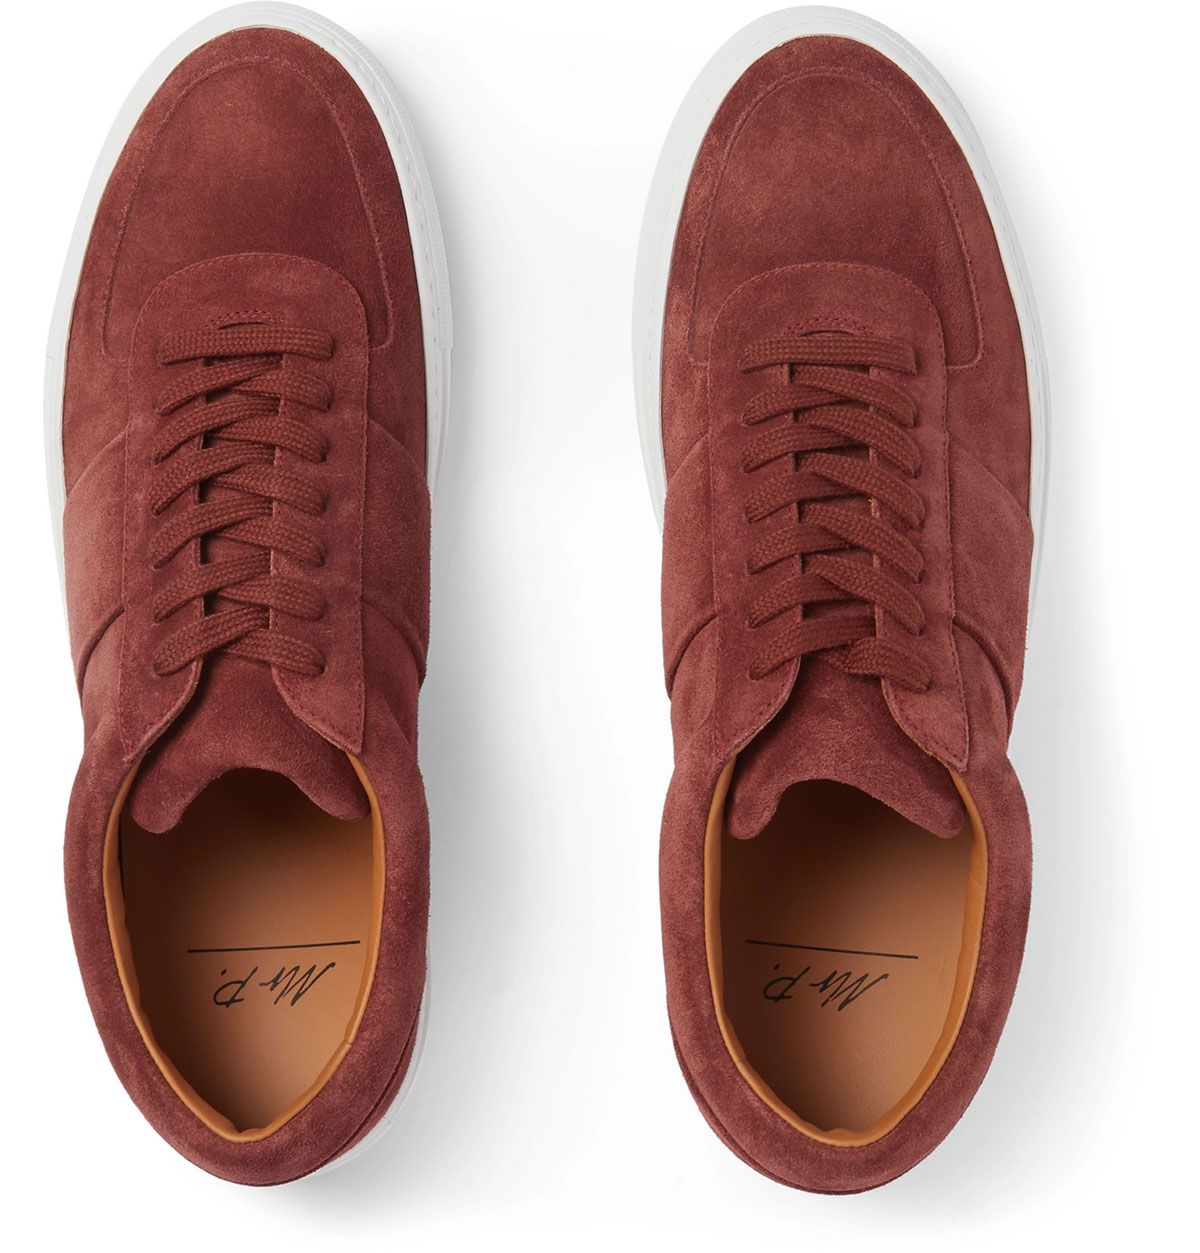 Mr P Larry Suede Sneakers